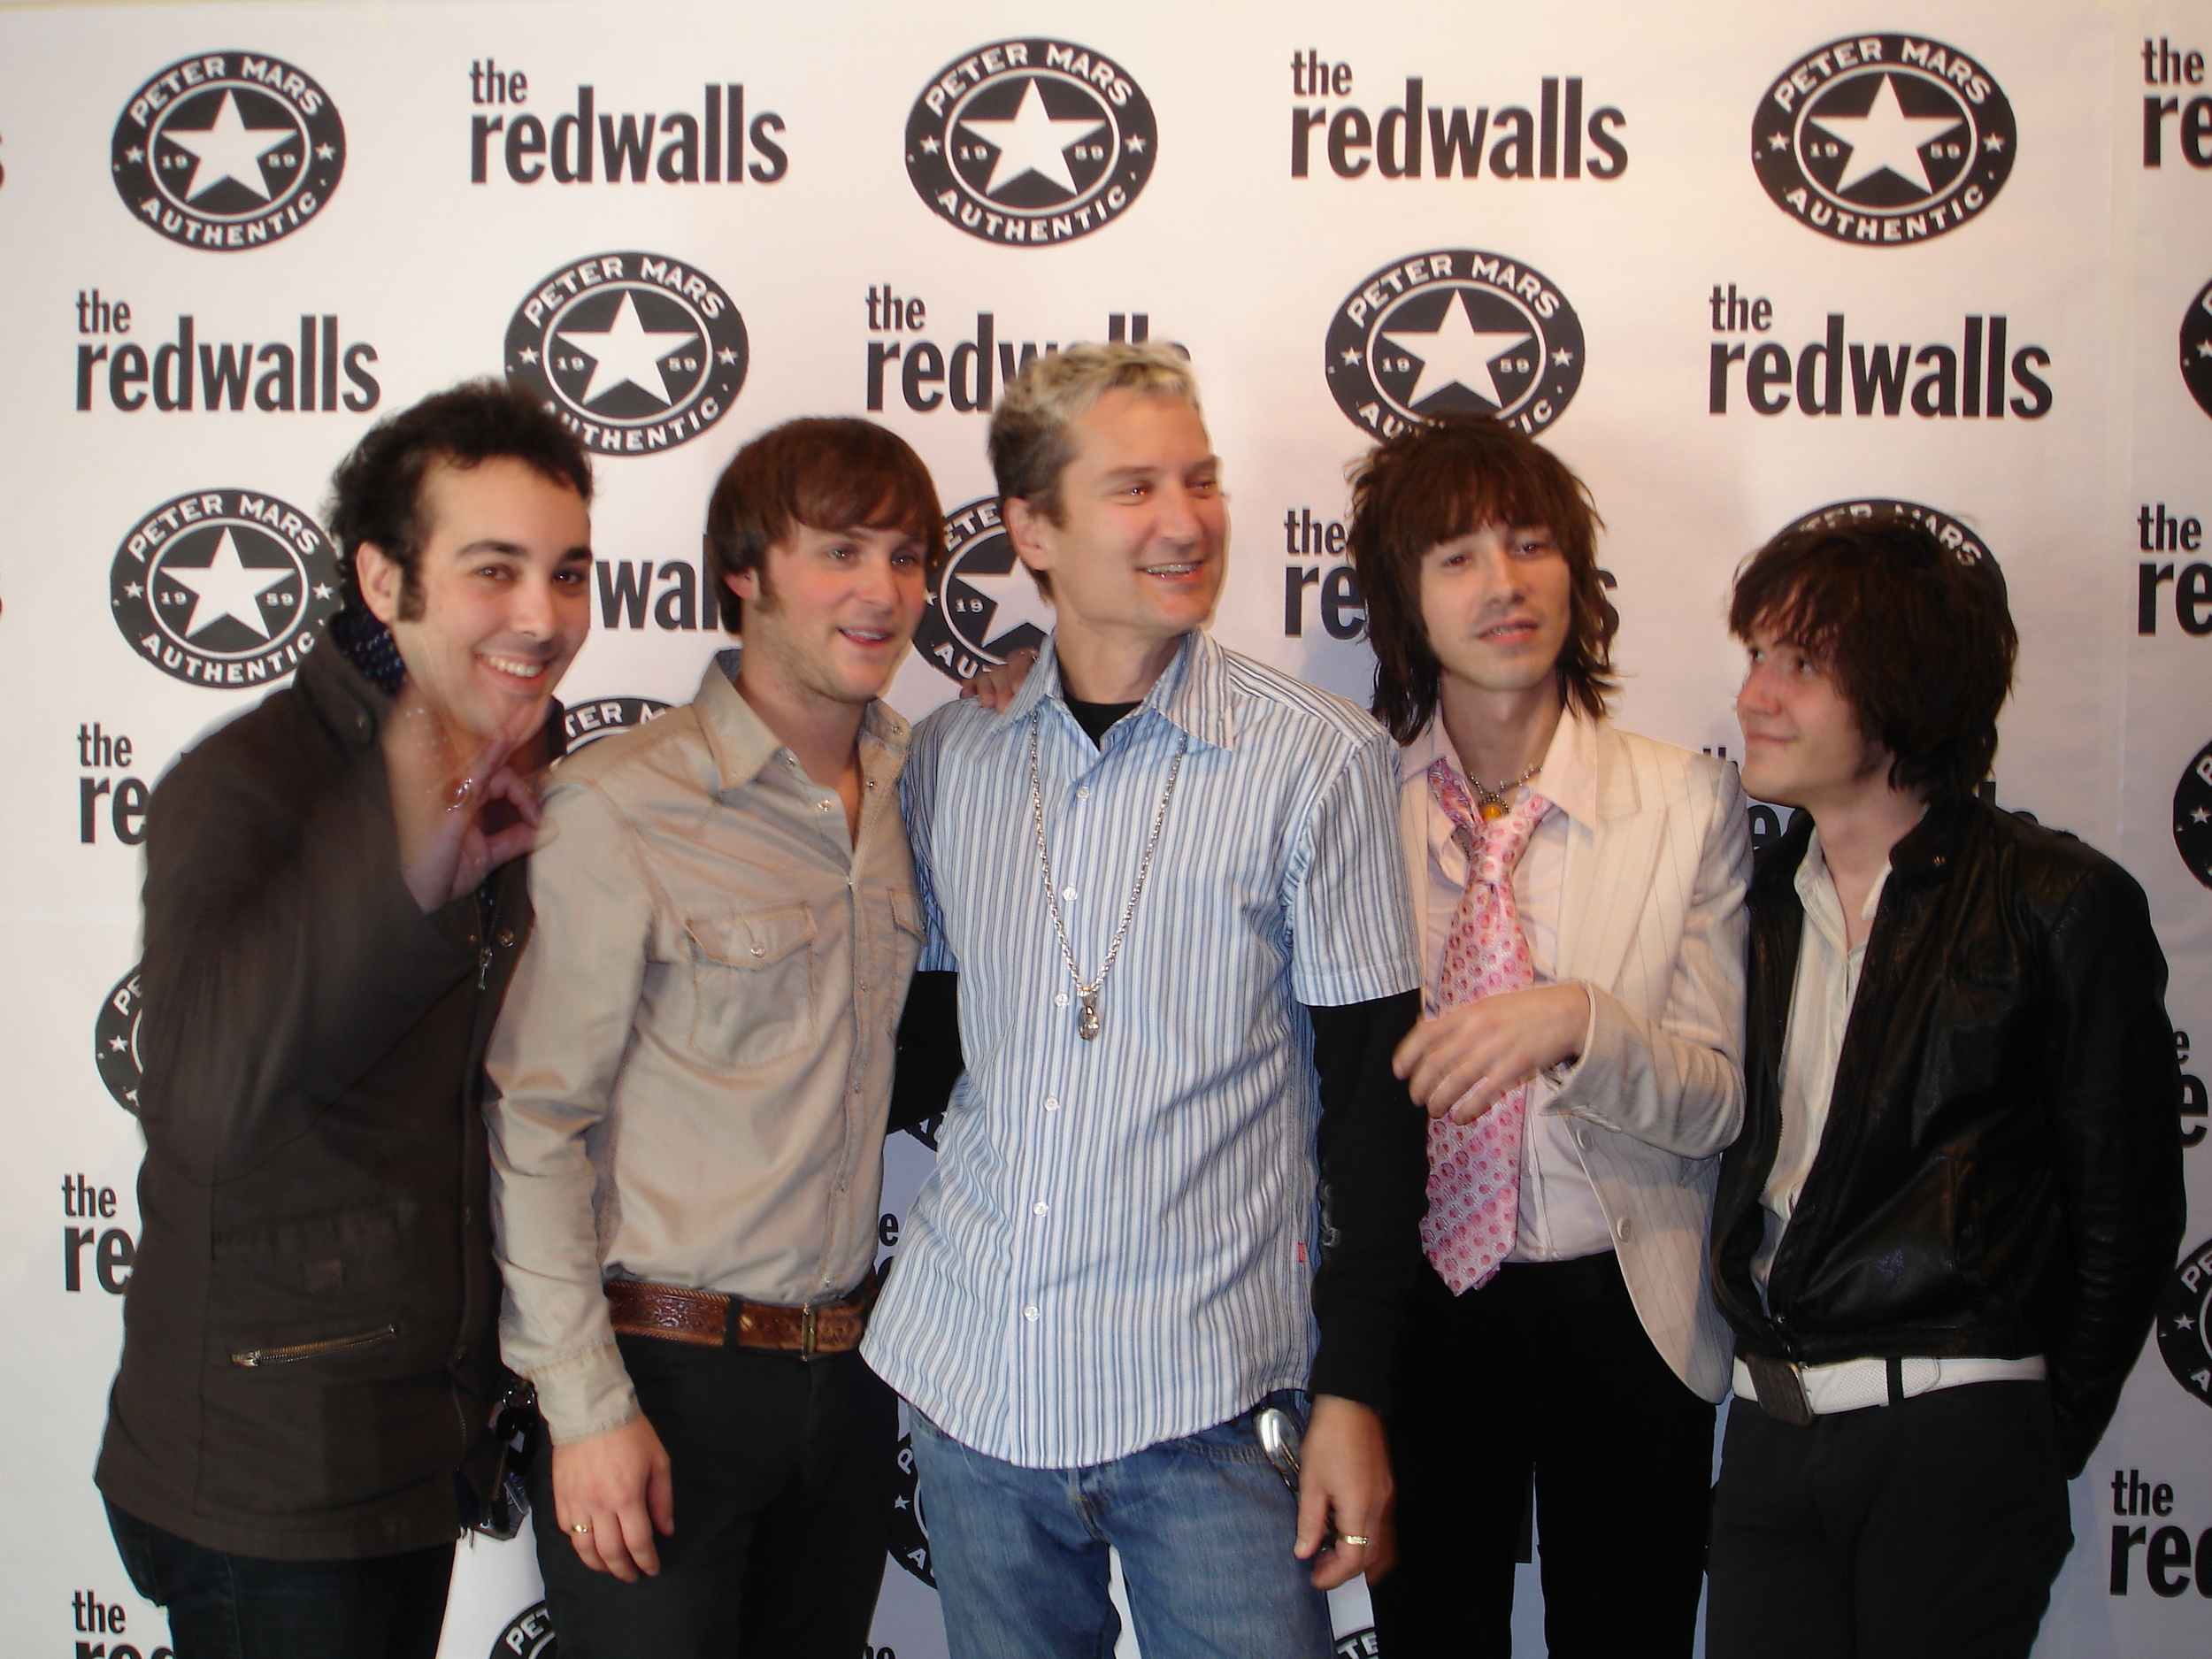 Peter Mars with The Redwalls